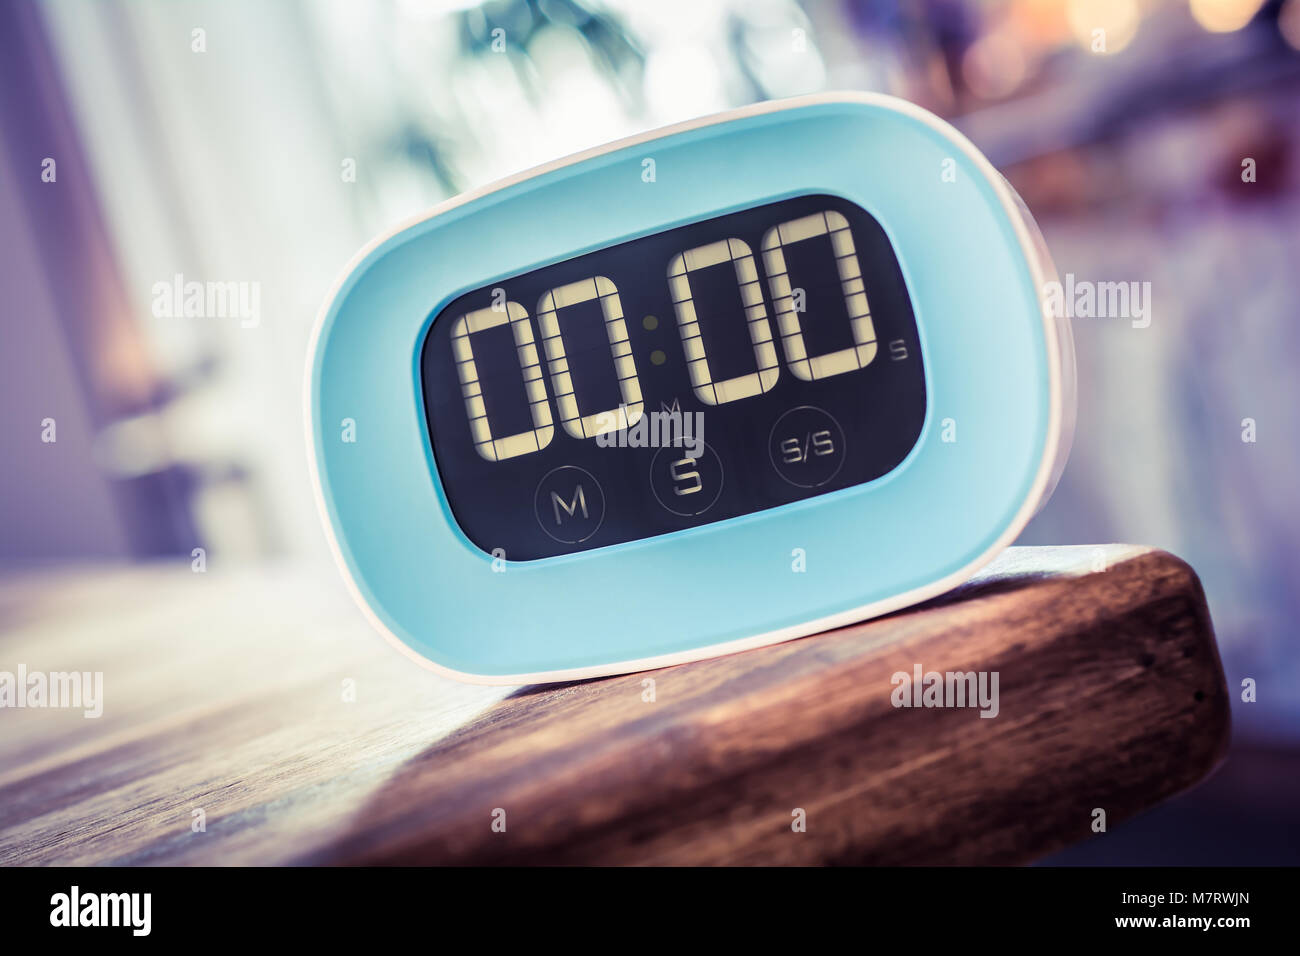 0 Minutes - Closeup Of A Digital Blue Kitchen Timer On Edge Of Wooden Table - Stock Image